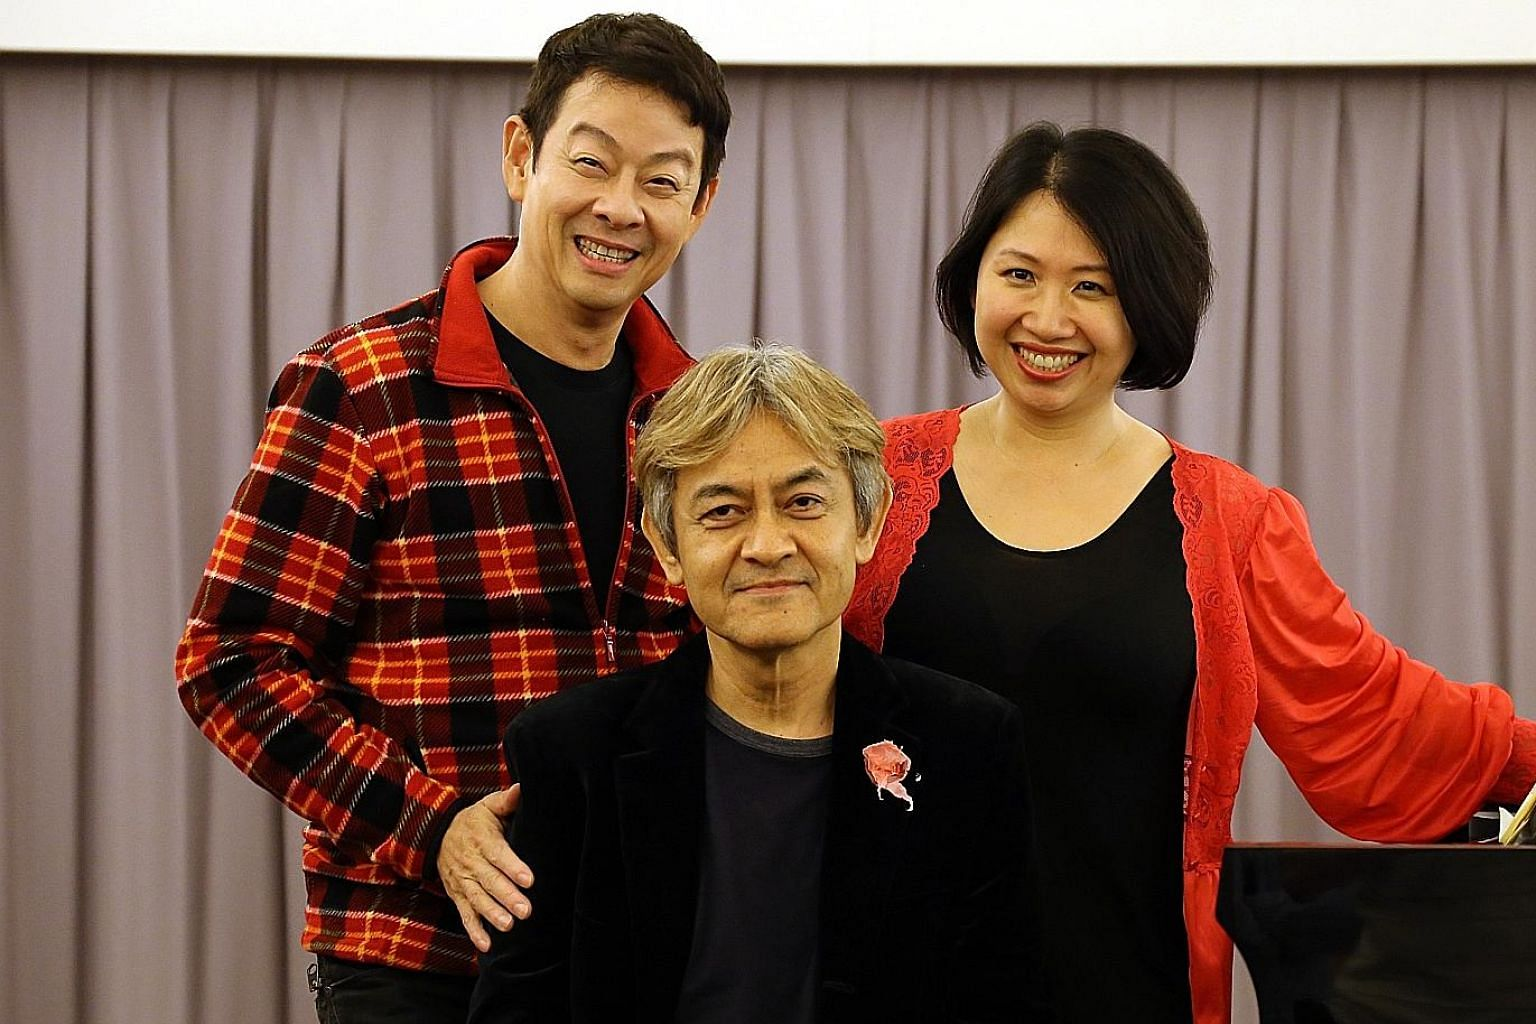 (From far left) Ivan Heng directs La Voix Humaine, which stars pianist Shane Thio and soprano Jennifer Lien.